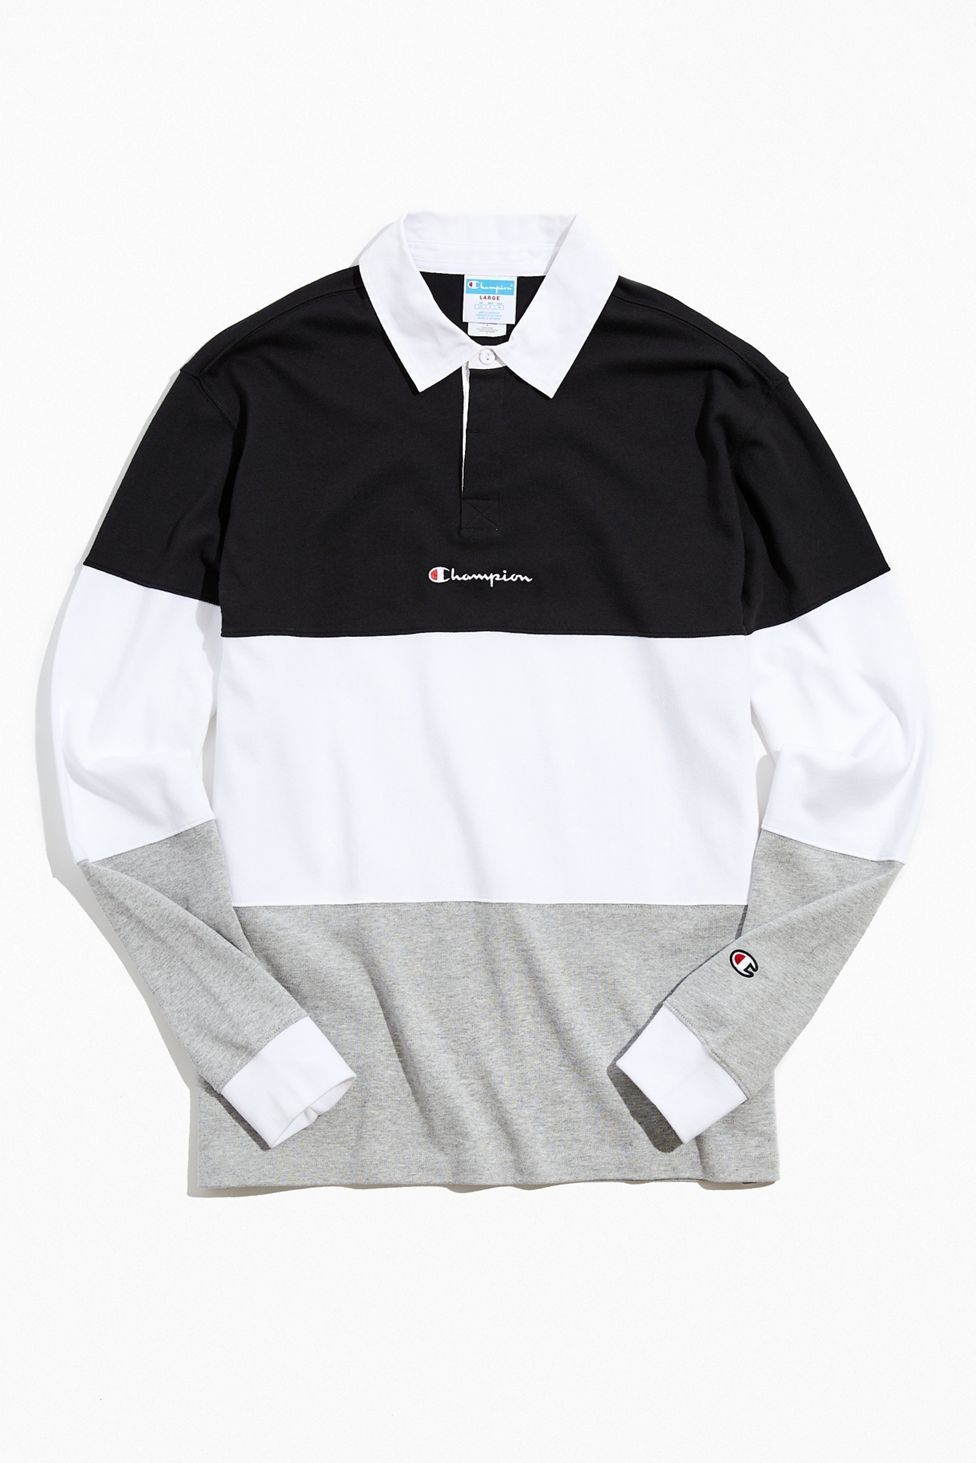 Champion Uo Exclusive Colorblock Rugby Shirt Urban Outfitters In 2021 Mens Rugby Shirts Rugby Shirt Rugby Fashion [ 1463 x 976 Pixel ]